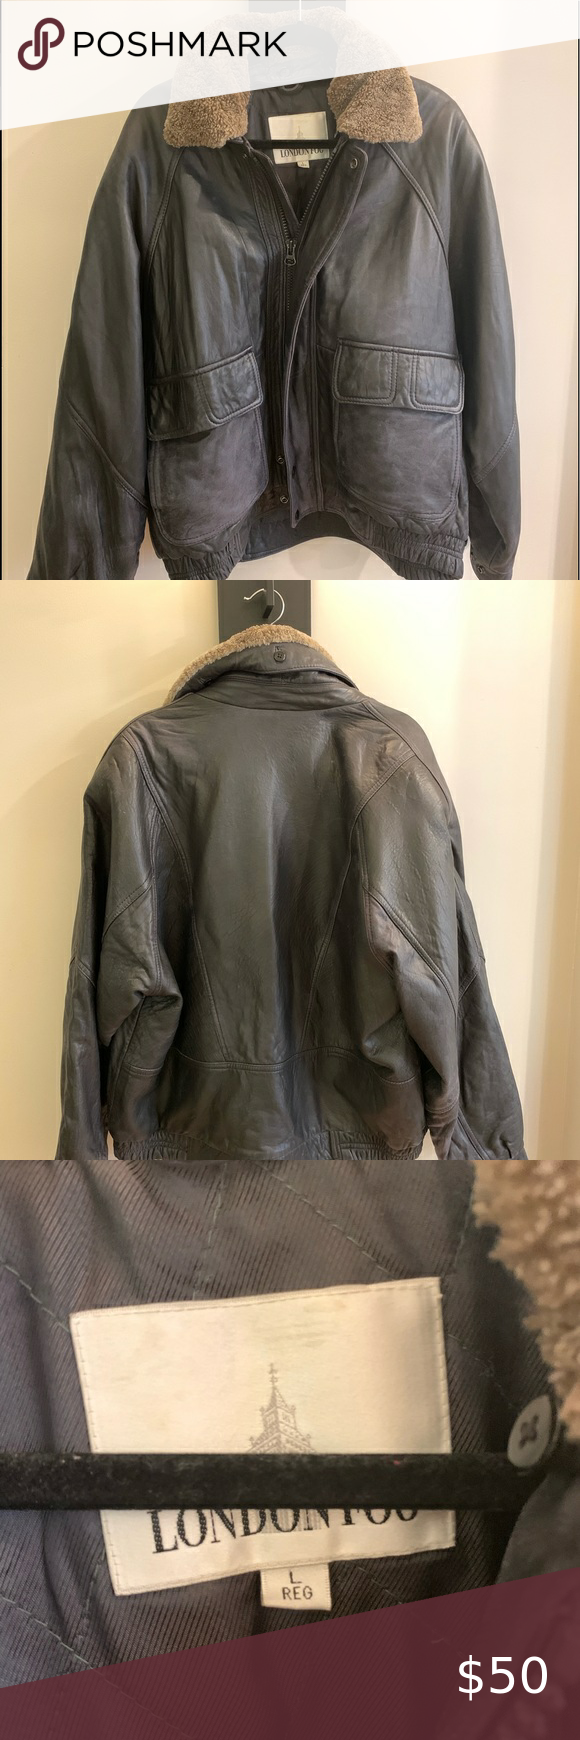 London Fog Leather Bomber In 2020 Leather Bomber Clothes Design London Fog